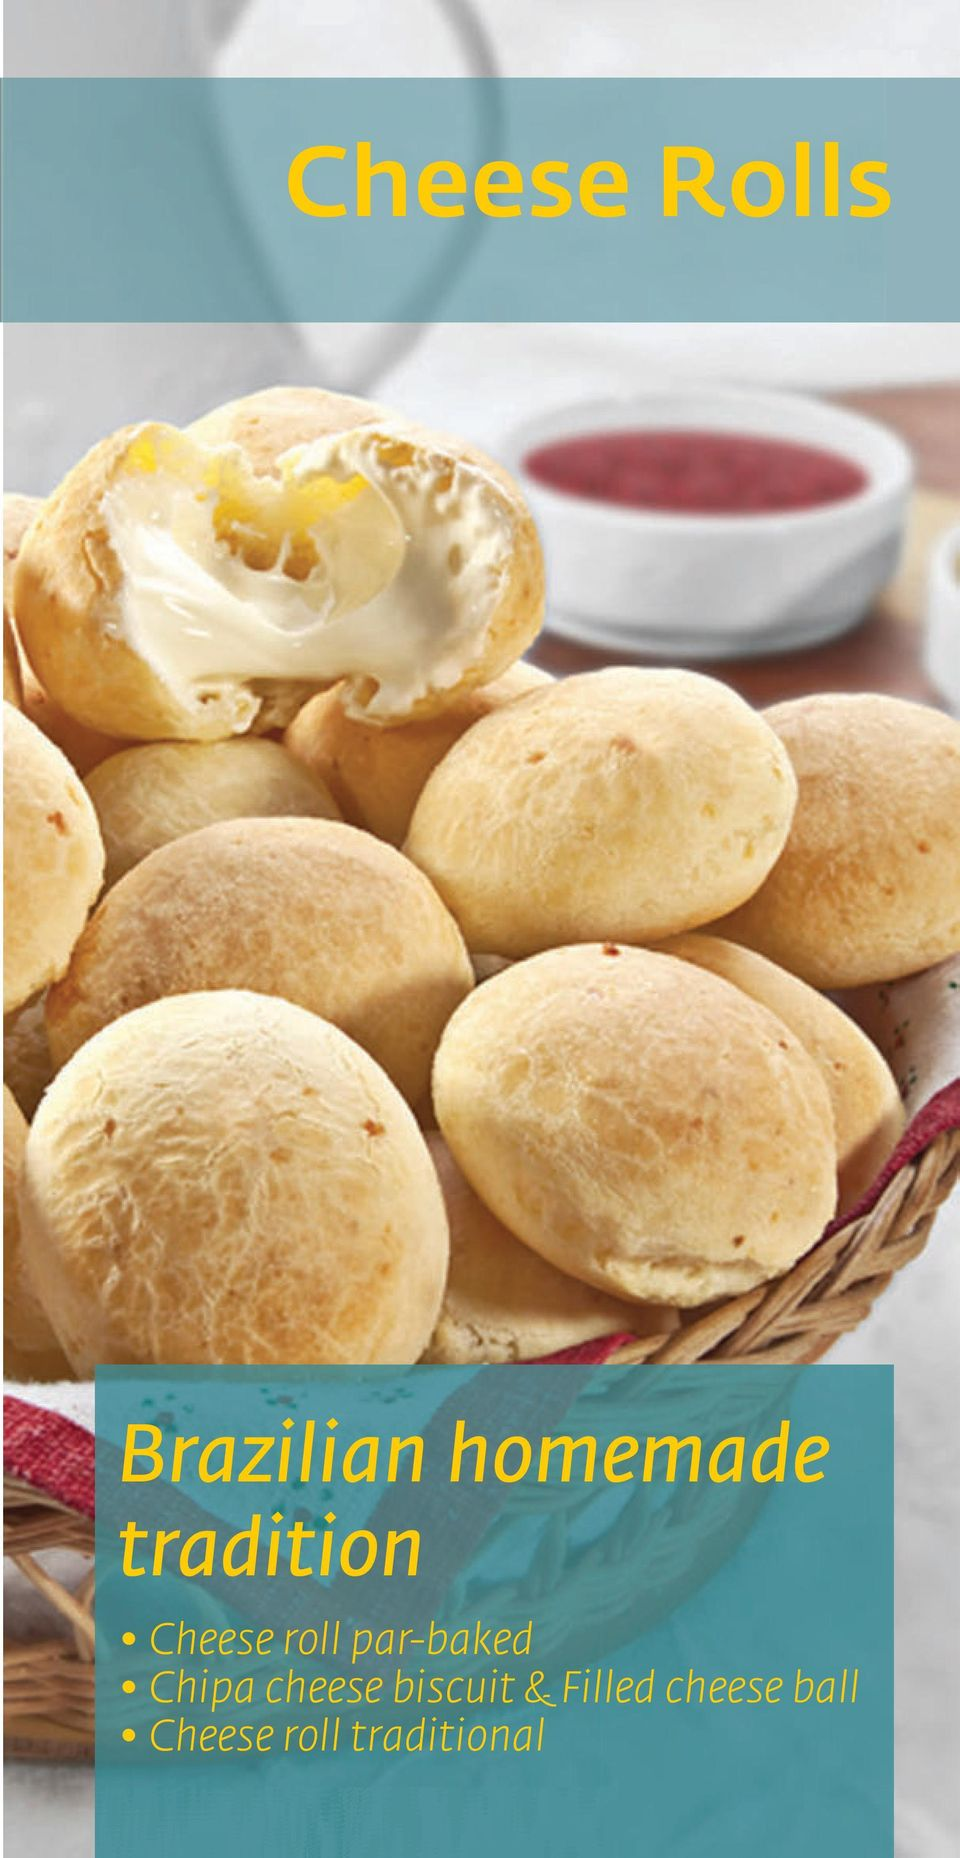 Chipa cheese biscuit & Filled